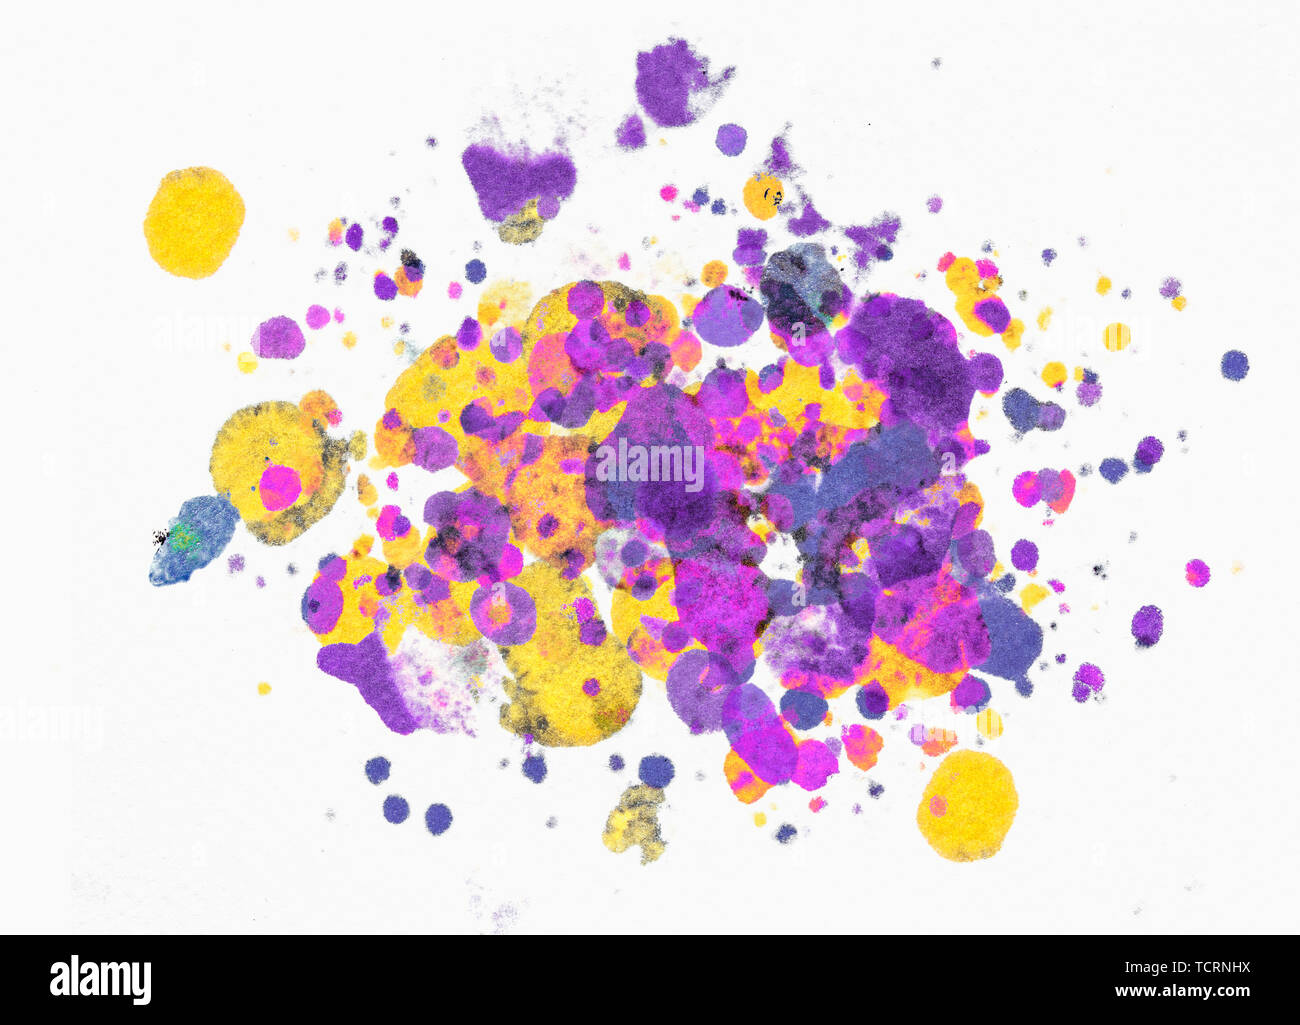 Splatter paint isolated on white background made with punchy magenta and yellow colours - Stock Image